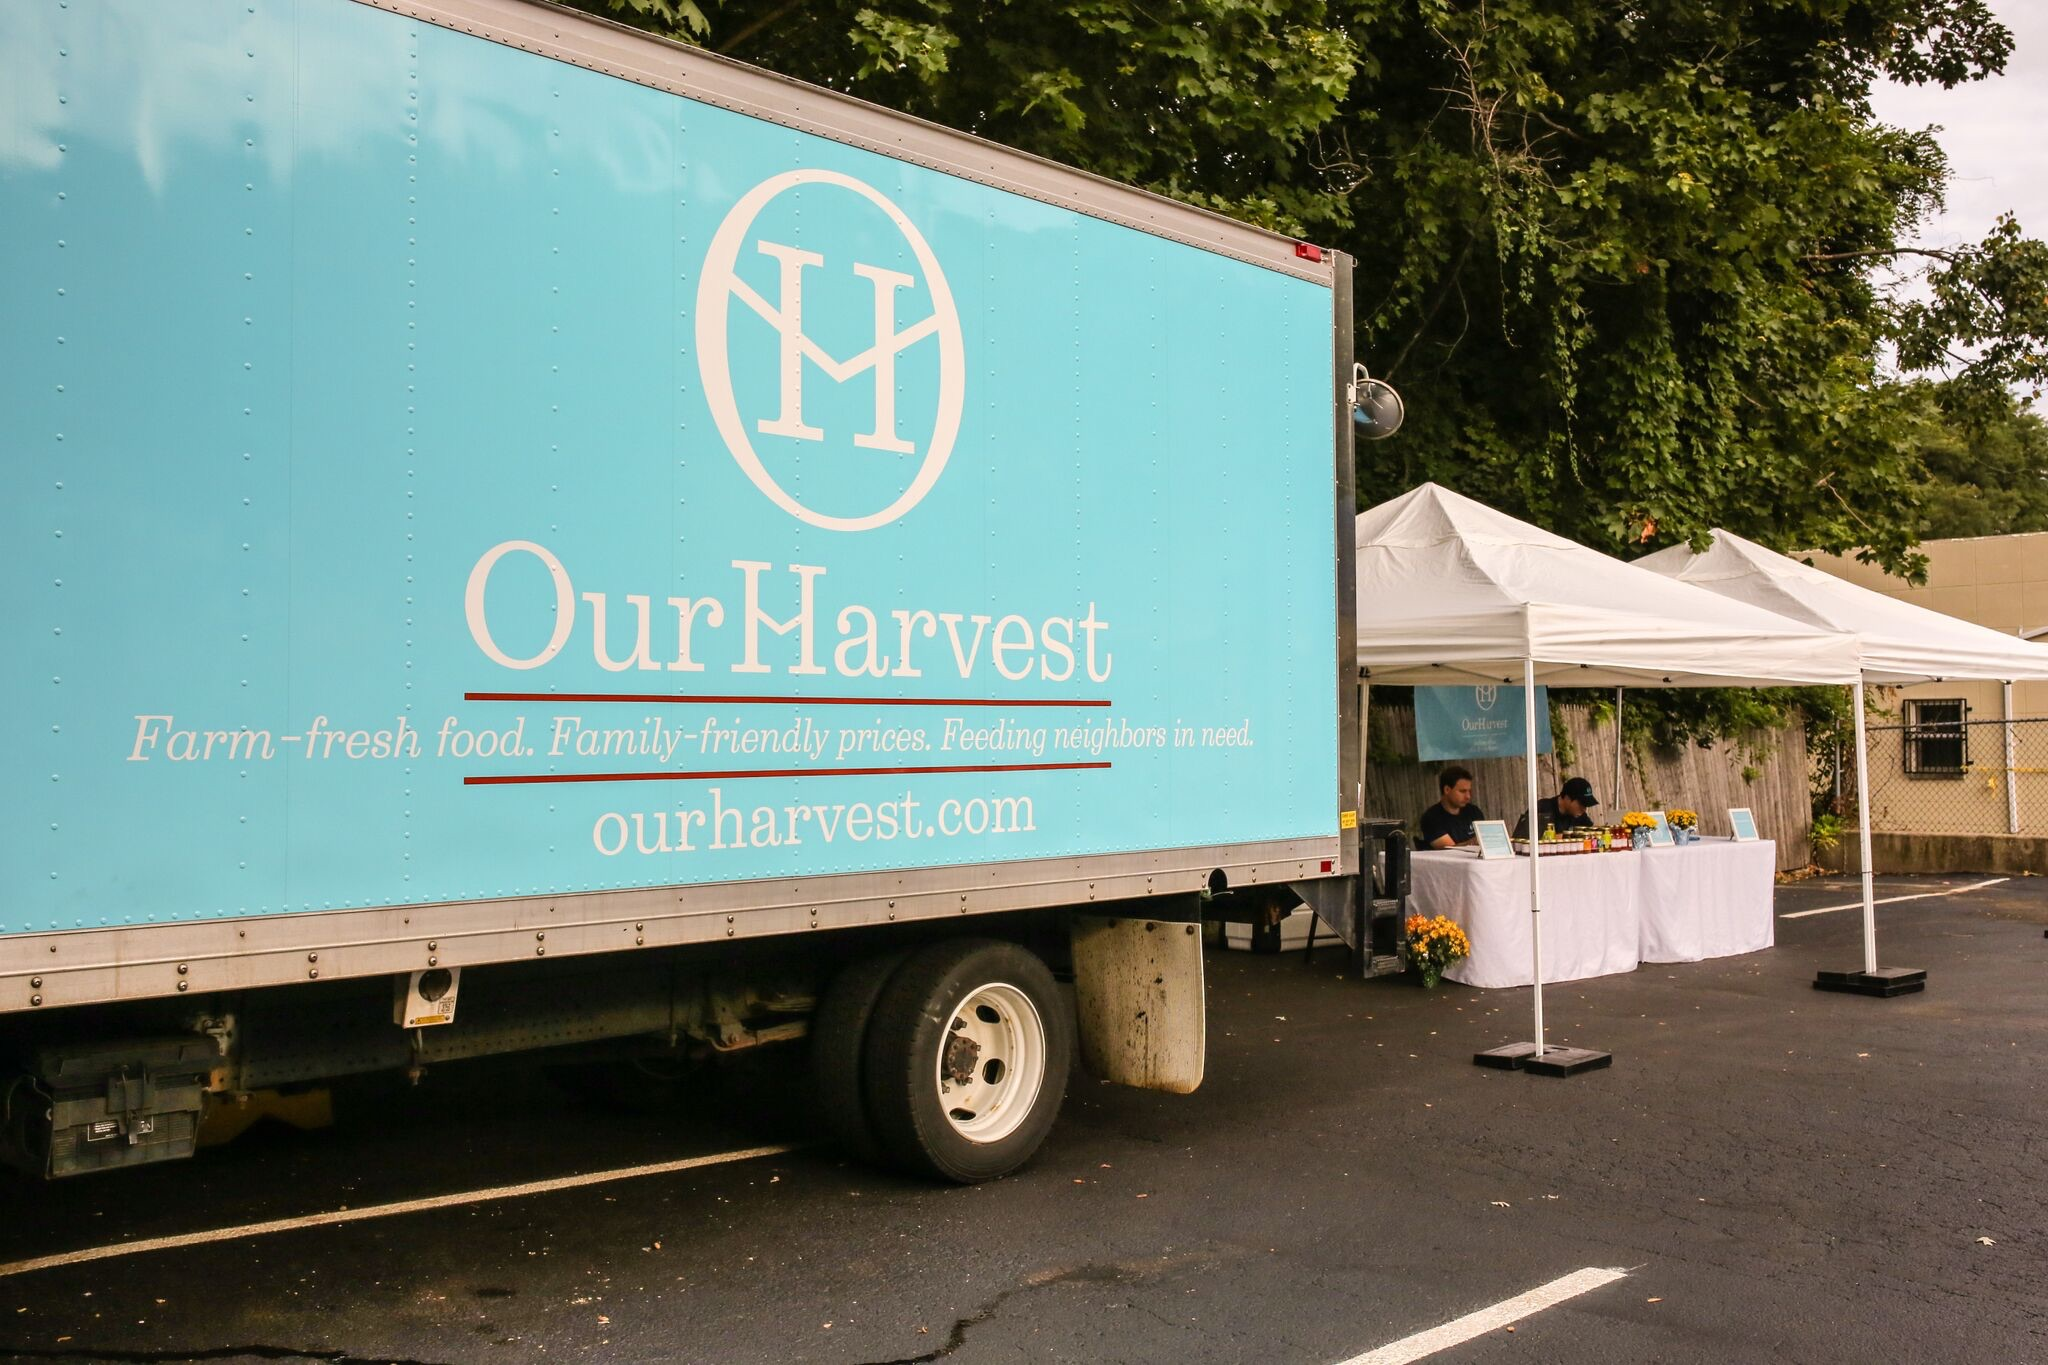 image: ourharvest